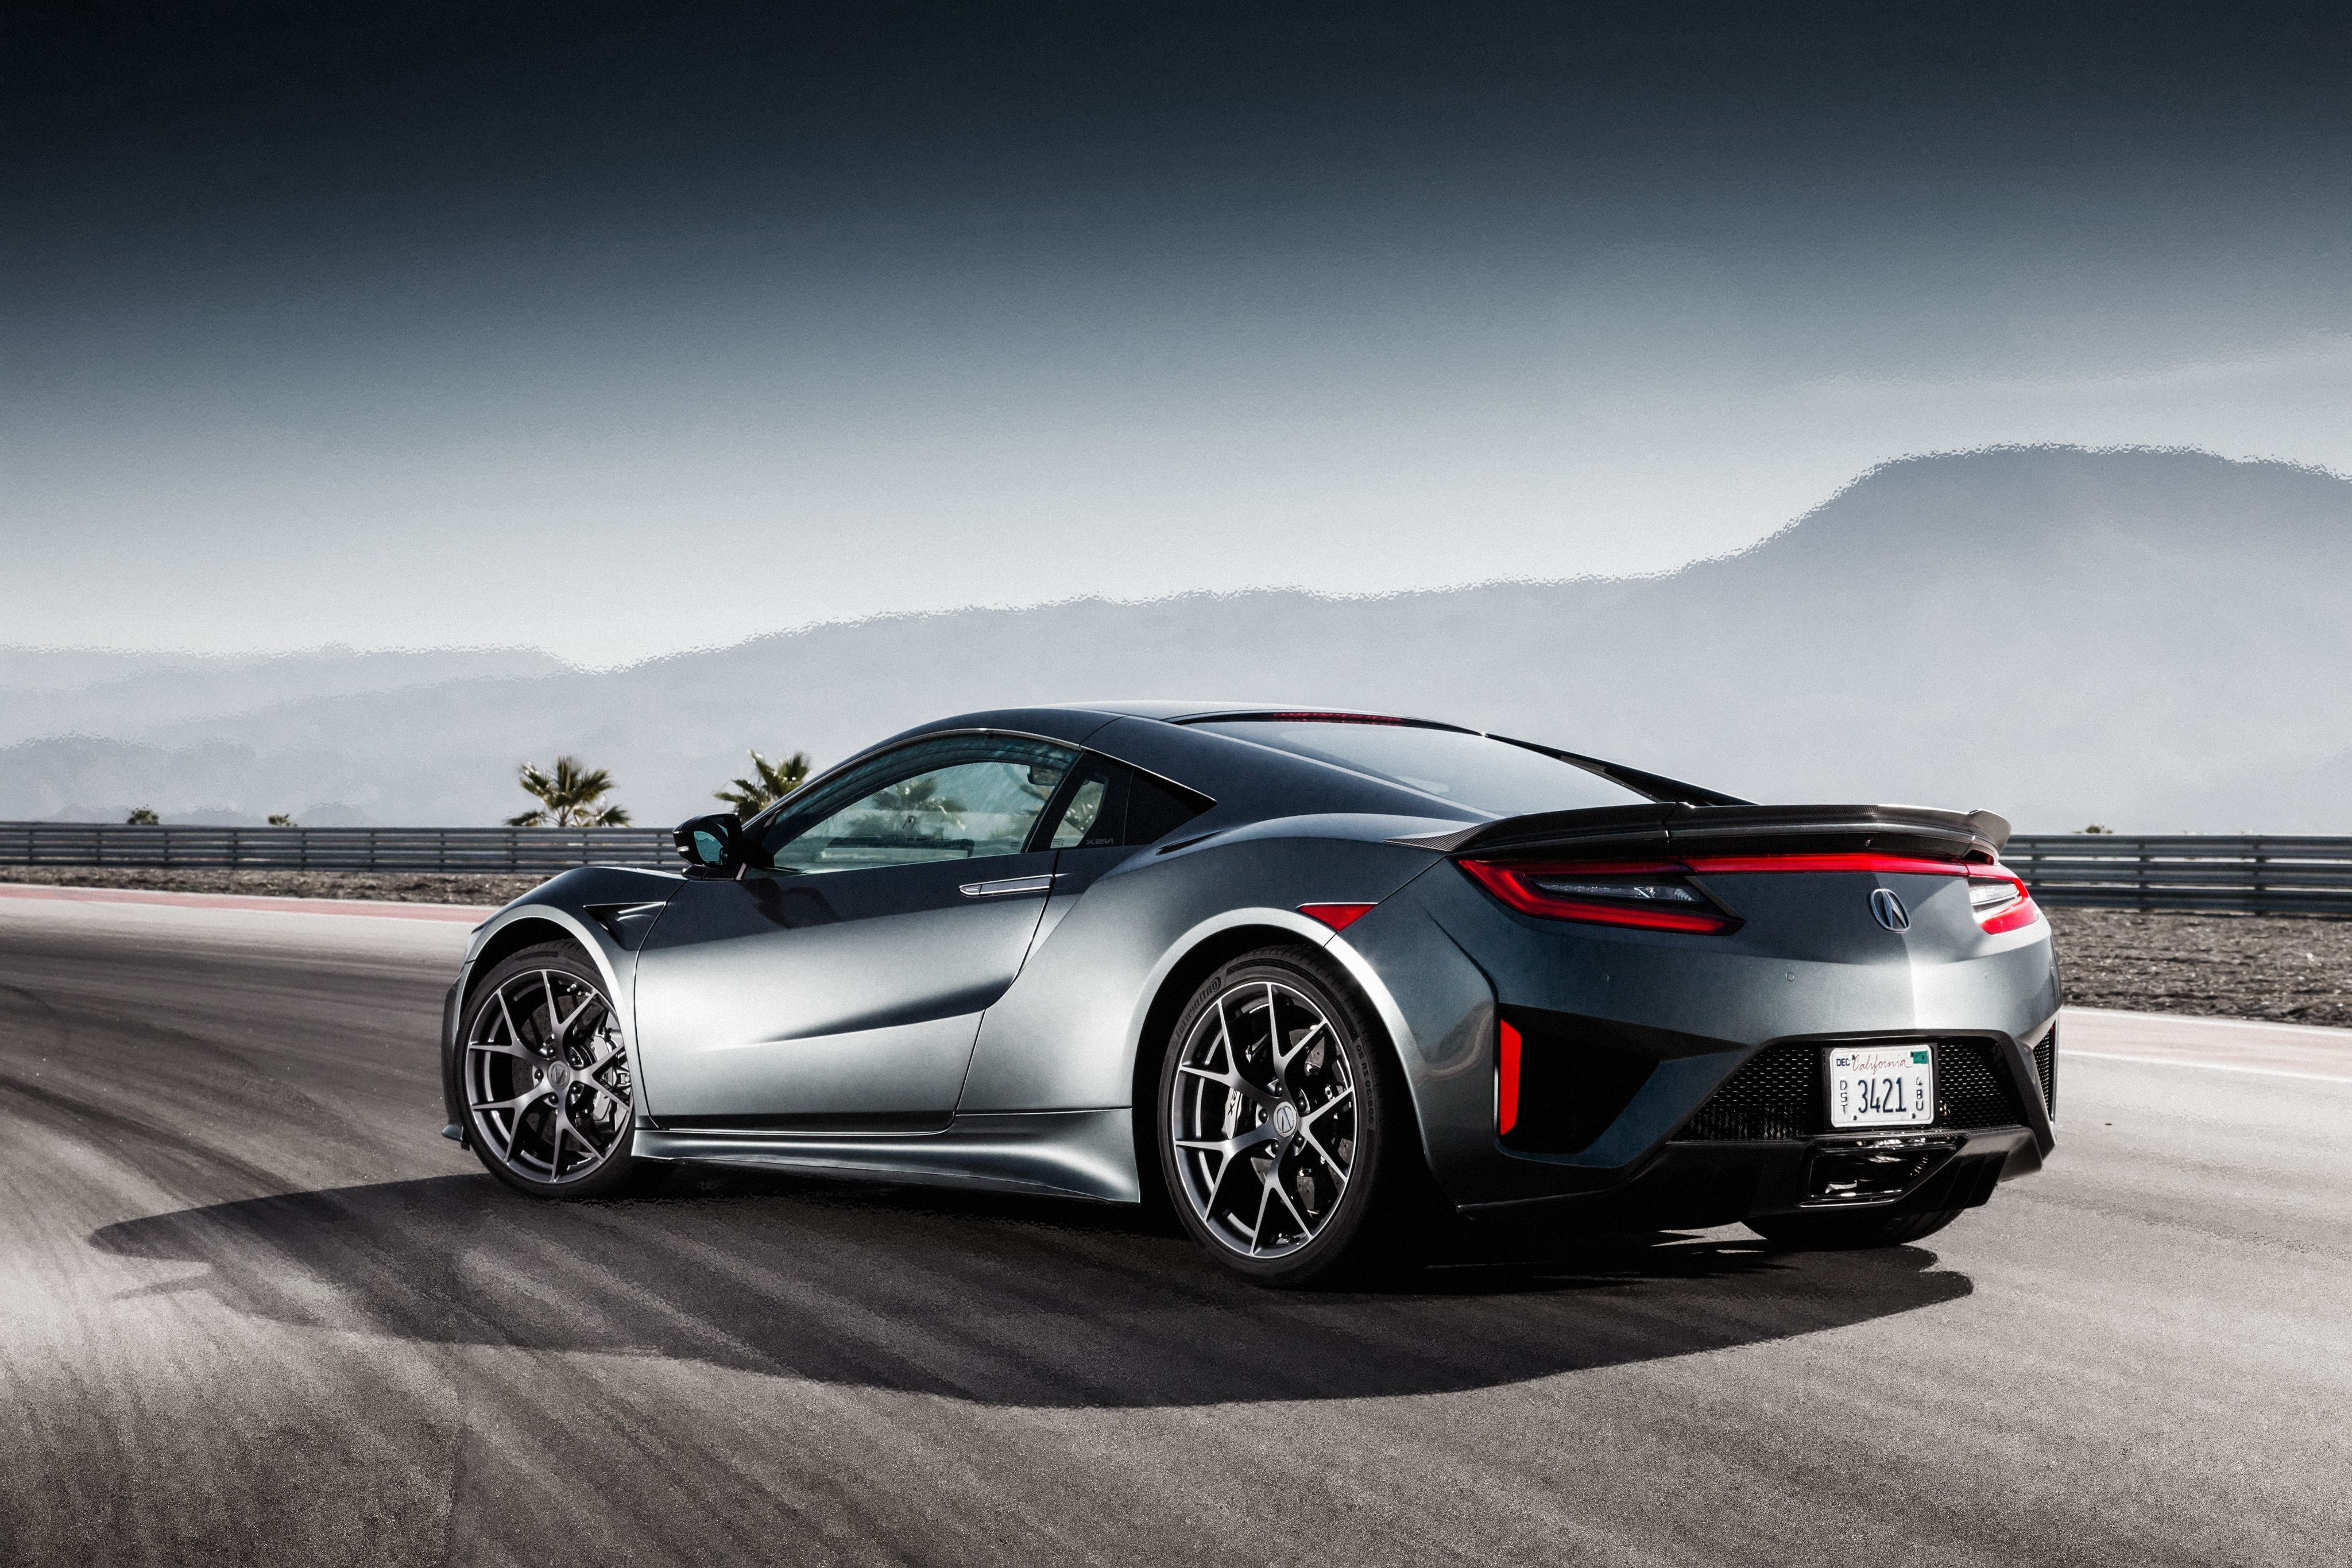 nsx 4k wallpapers - top free nsx 4k backgrounds